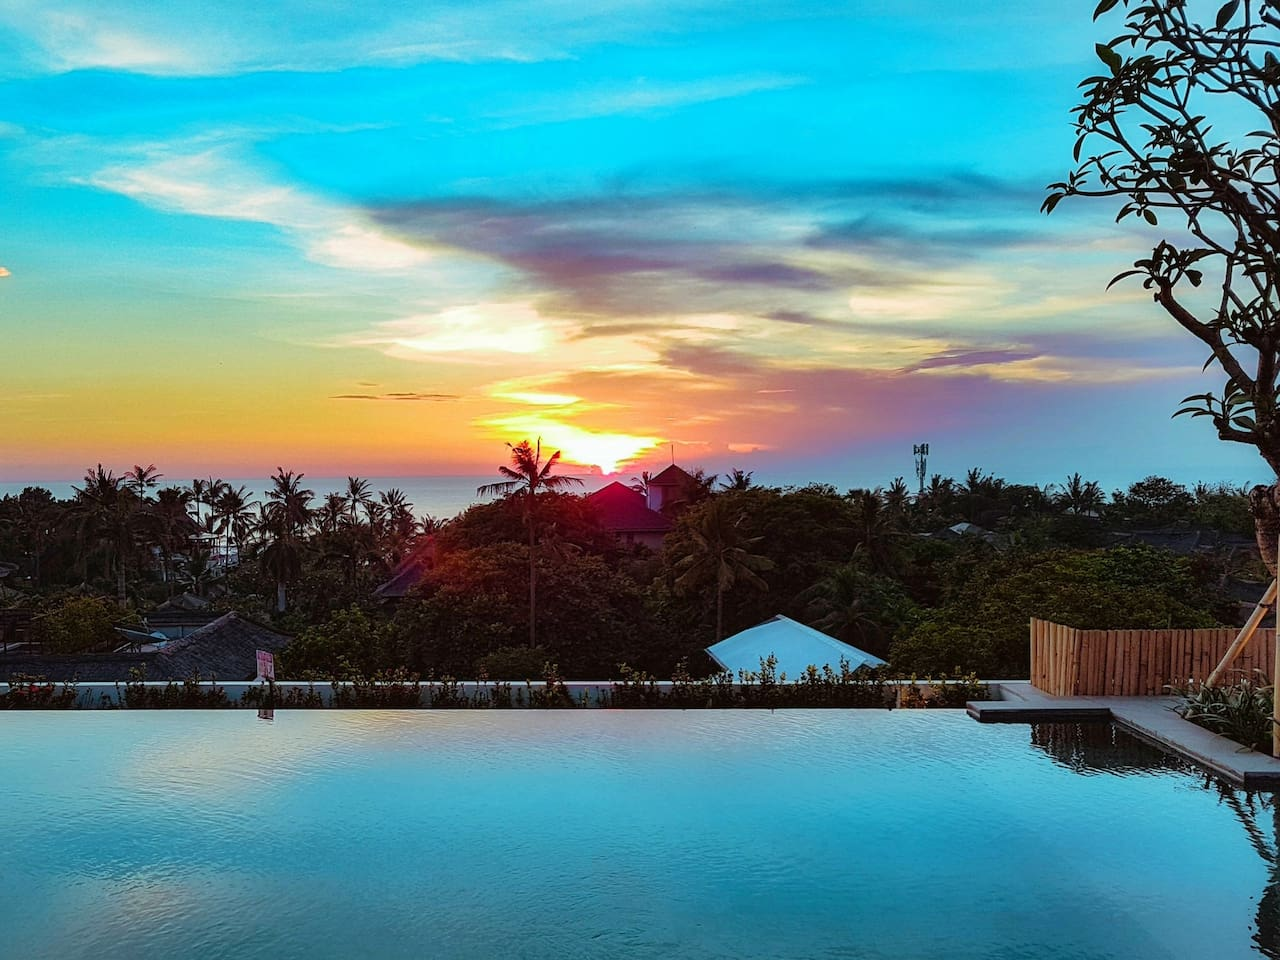 Infinity Rooftop Pool with Romantic Sunset